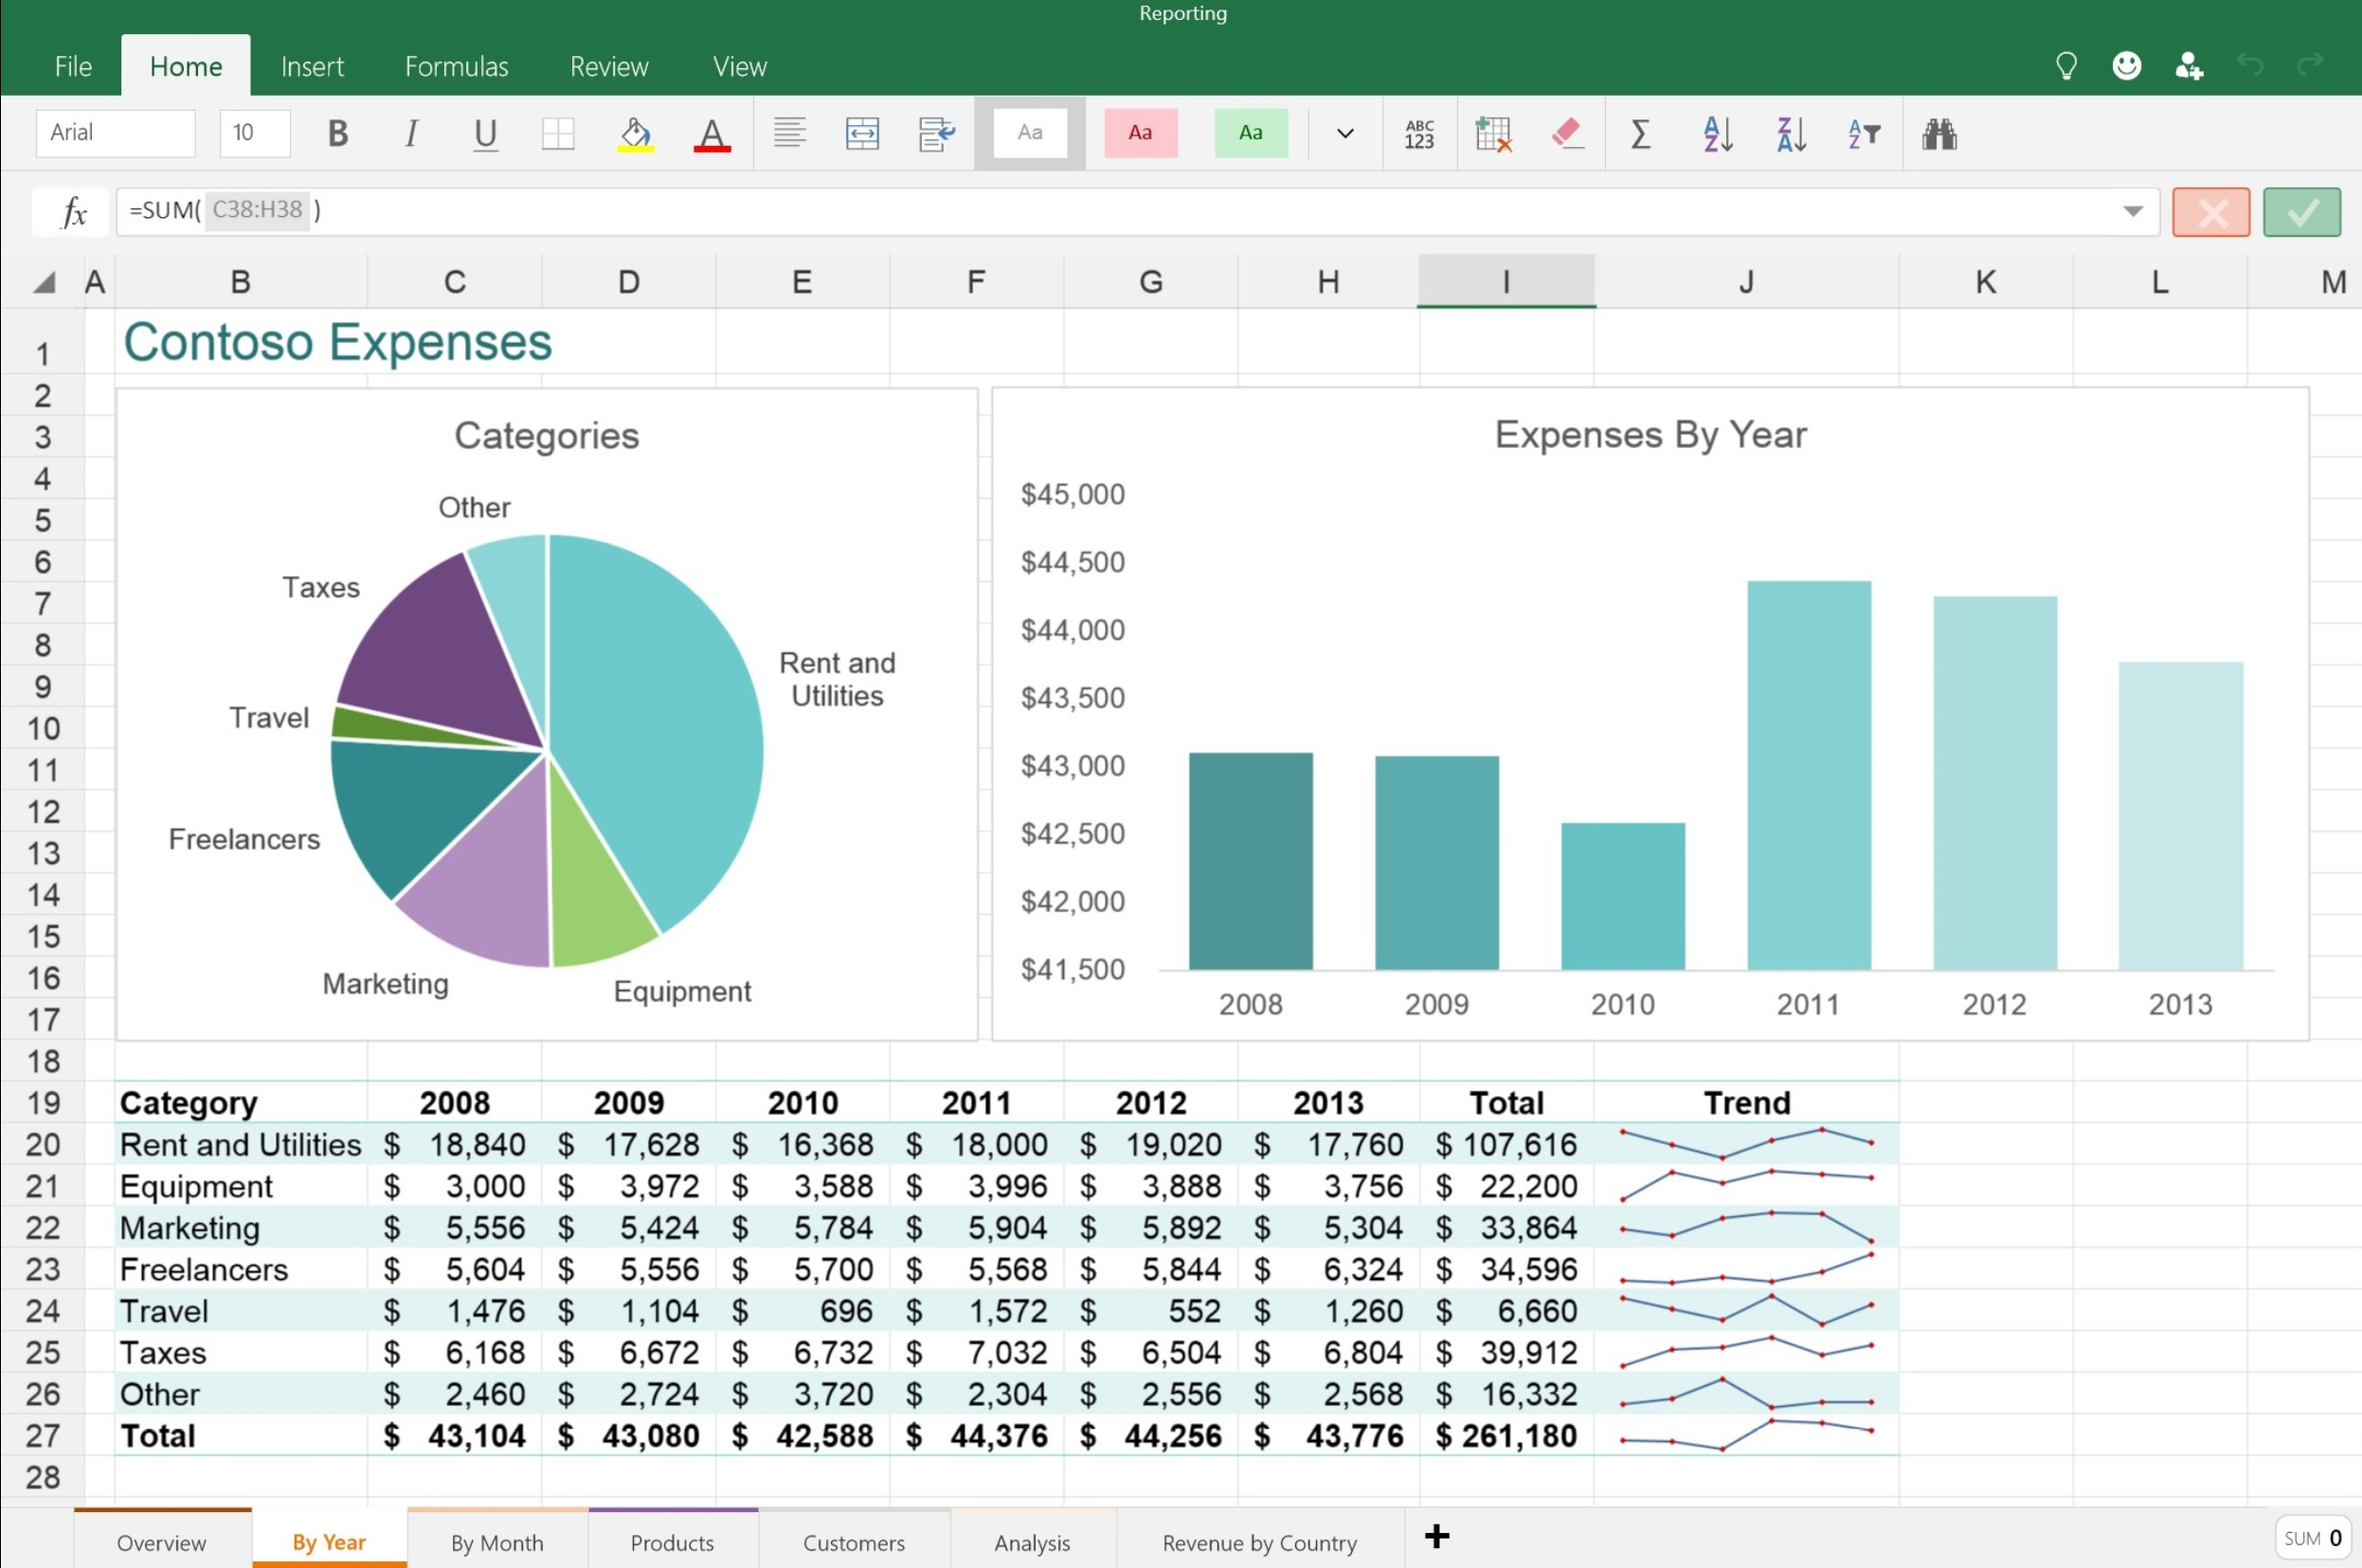 Ediblewildsus  Remarkable Features Available In The New Word Excel And Powerpoint Apps For  With Exquisite Excel Touch App  With Attractive Excel Delete Range Name Also How To Use Excel For Statistics In Addition Split Excel Column And Splitting Excel Cells As Well As Surface Plot Excel Additionally Excel Vba Reference Cell From Mspowerusercom With Ediblewildsus  Exquisite Features Available In The New Word Excel And Powerpoint Apps For  With Attractive Excel Touch App  And Remarkable Excel Delete Range Name Also How To Use Excel For Statistics In Addition Split Excel Column From Mspowerusercom